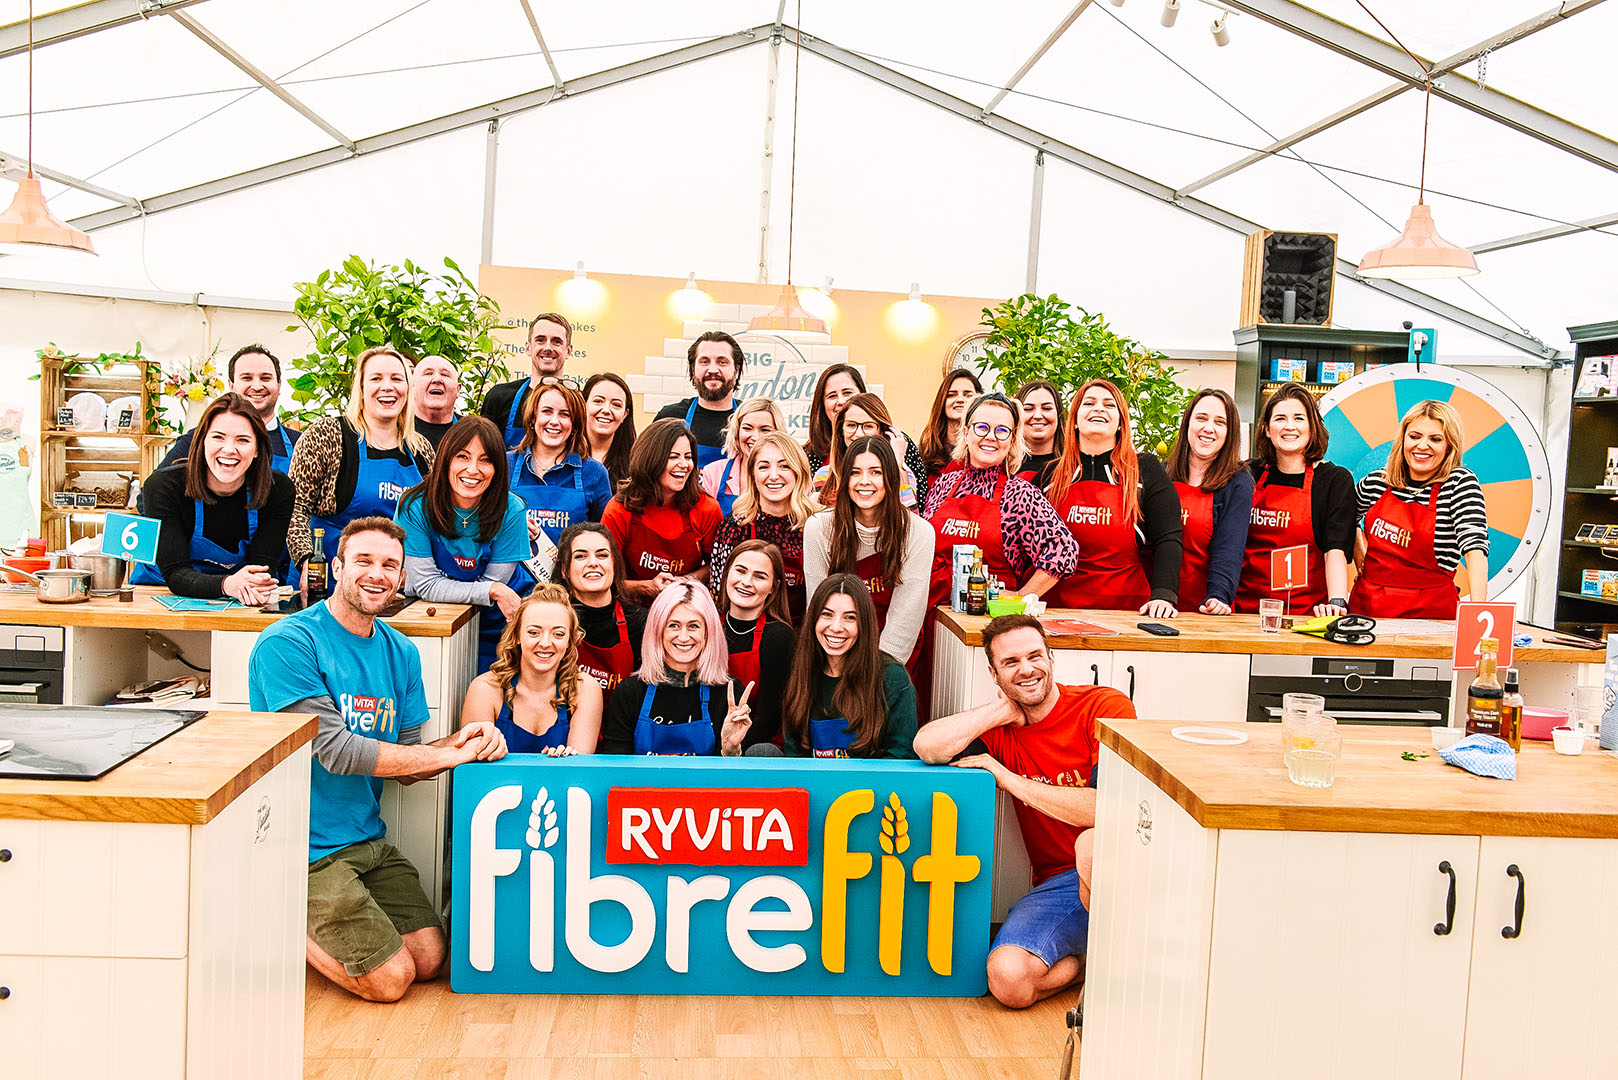 Ryvita Event Fibre Fit team